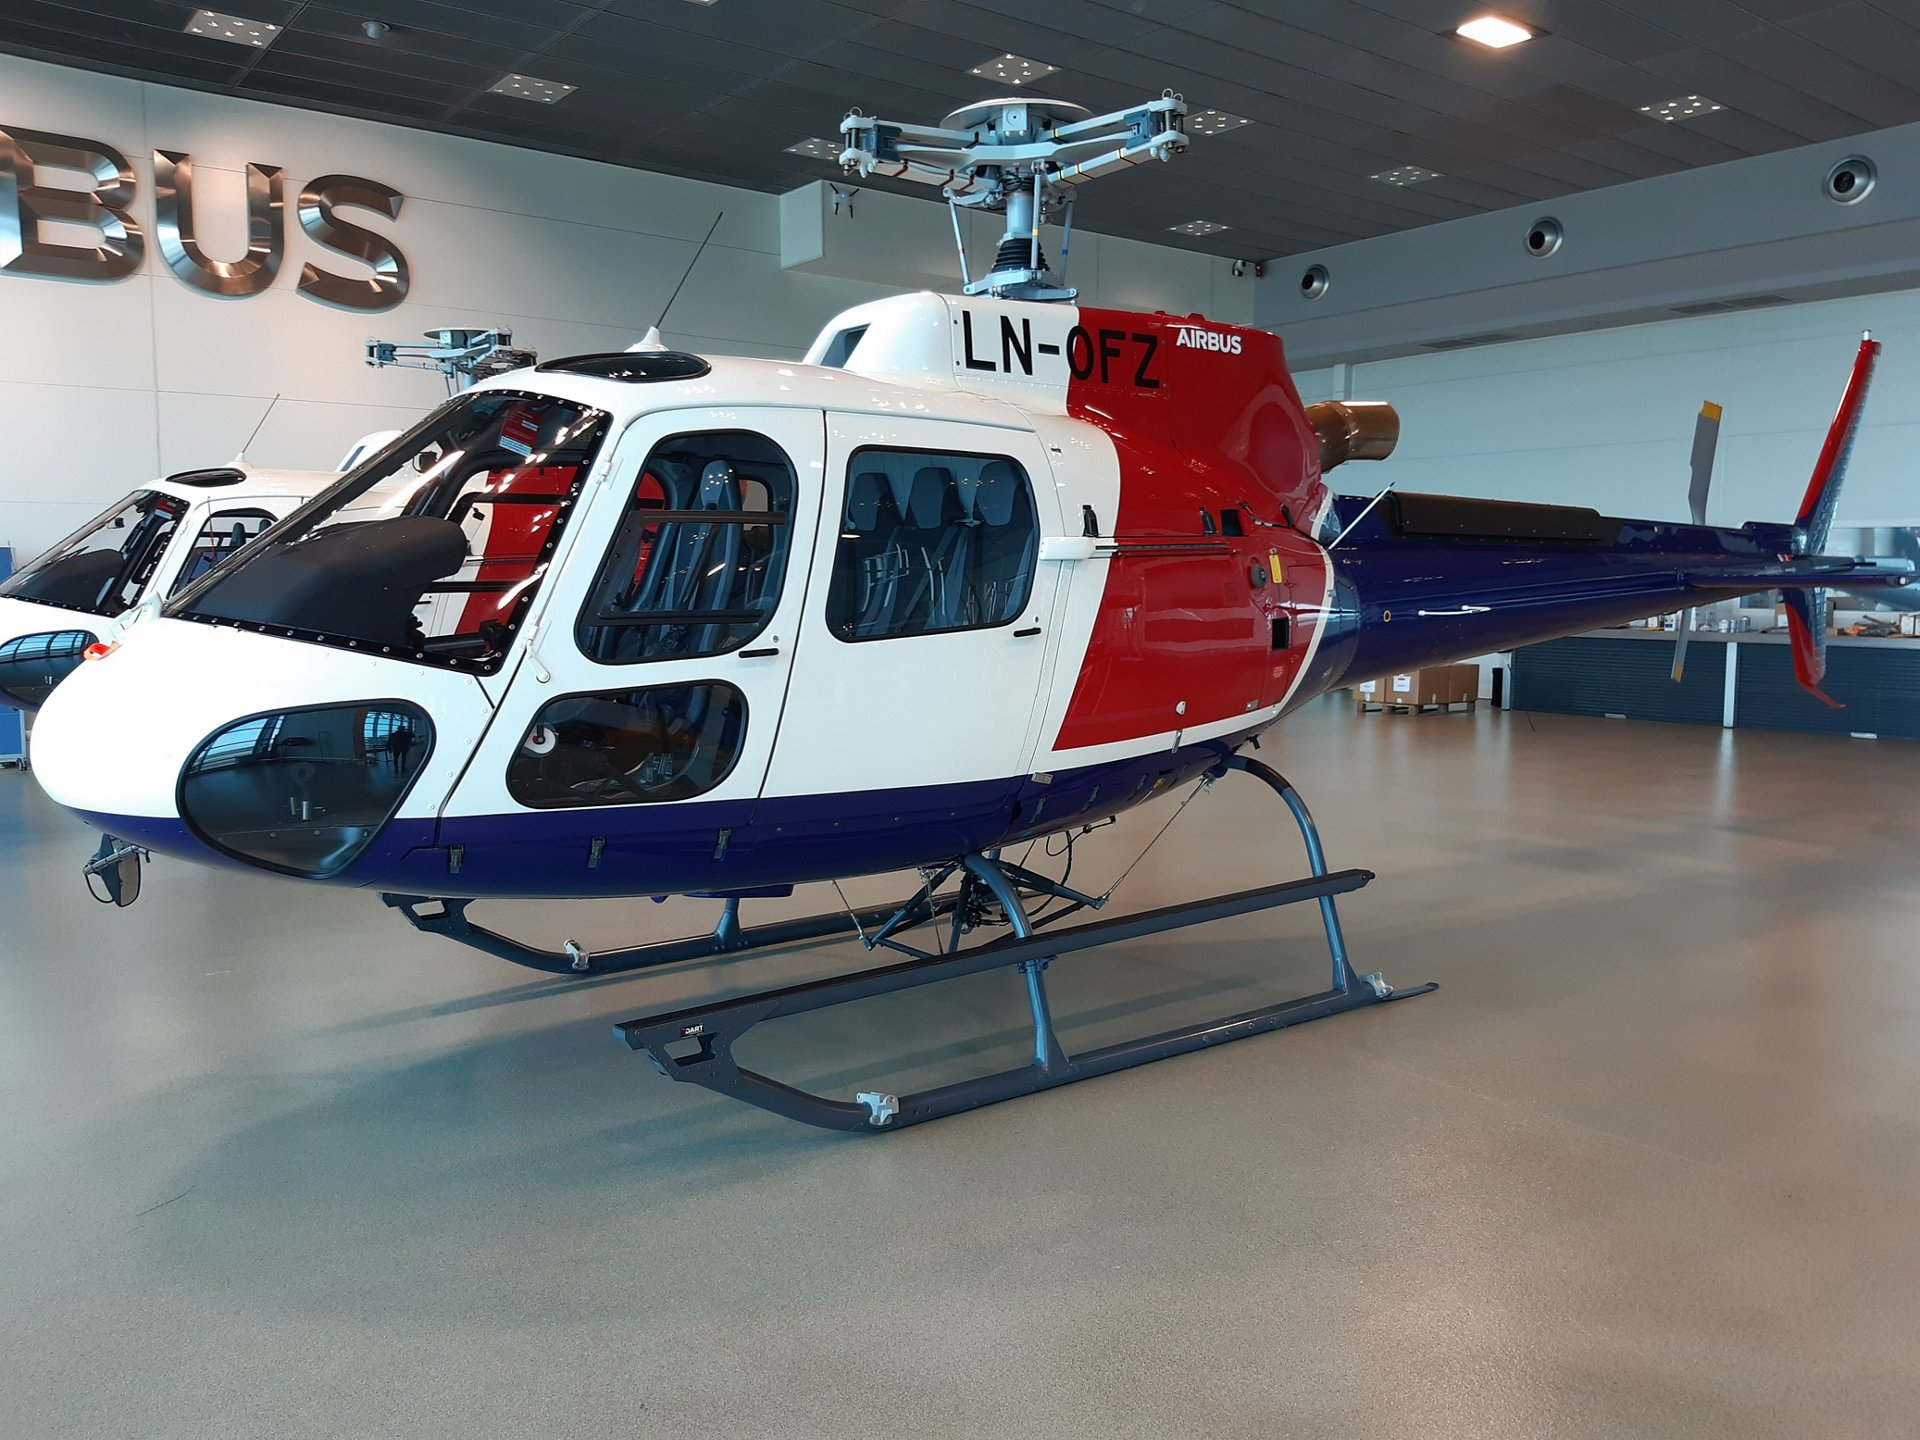 Helitrans of Norway has become the first customer to take delivery